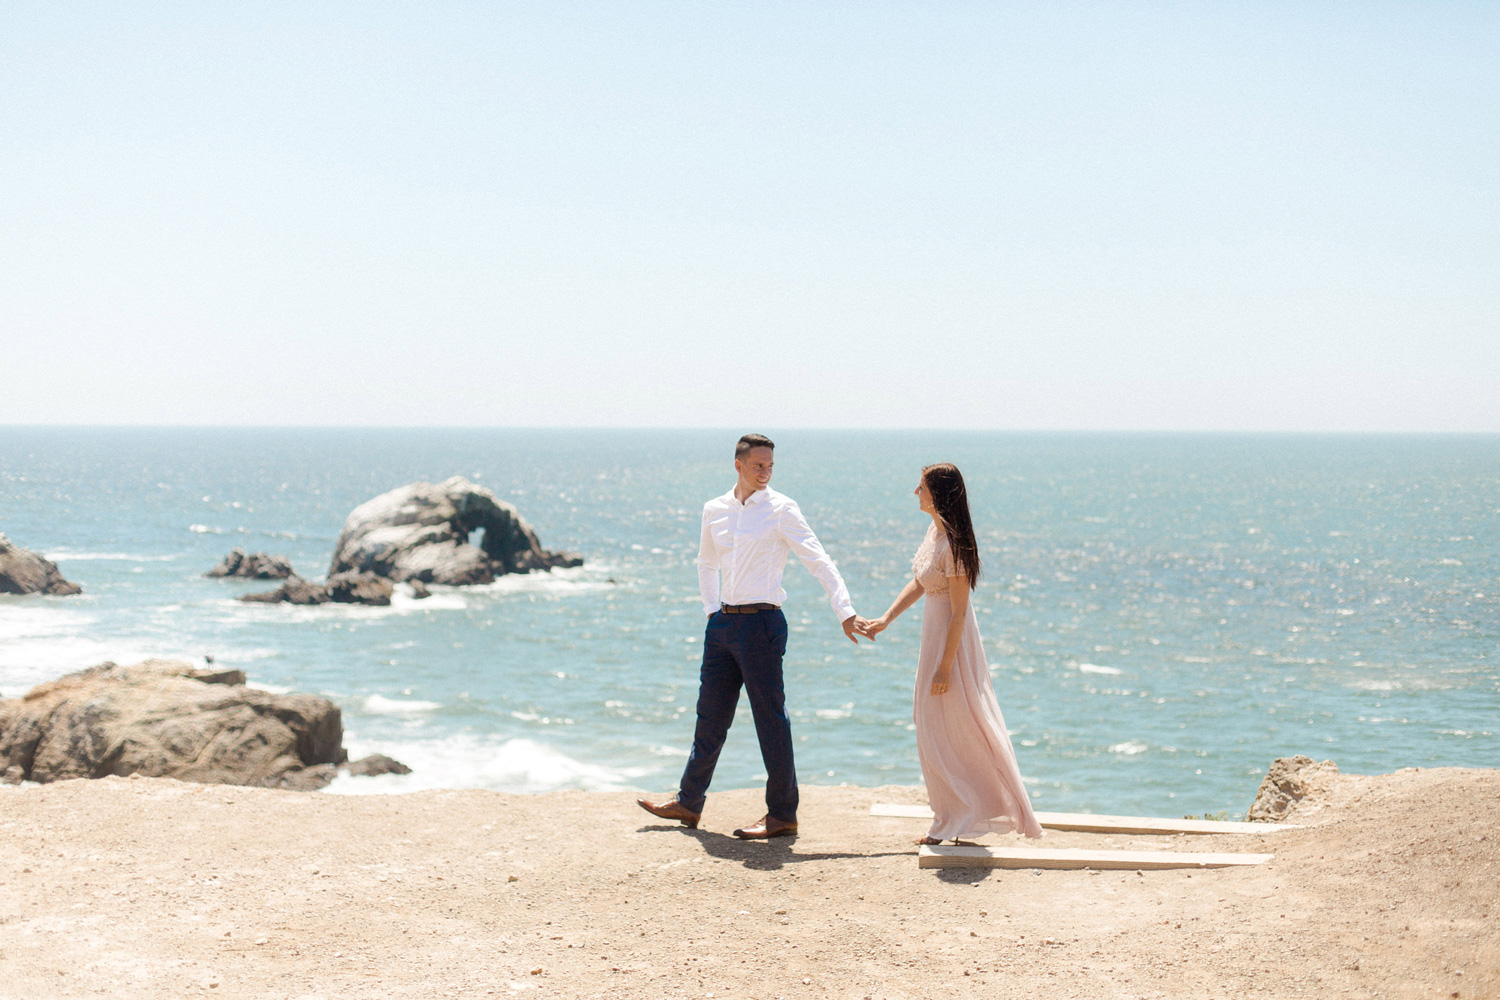 baker-beach-san-francisco-california-engagement-session-carography-stuidos-I58A9559.jpg